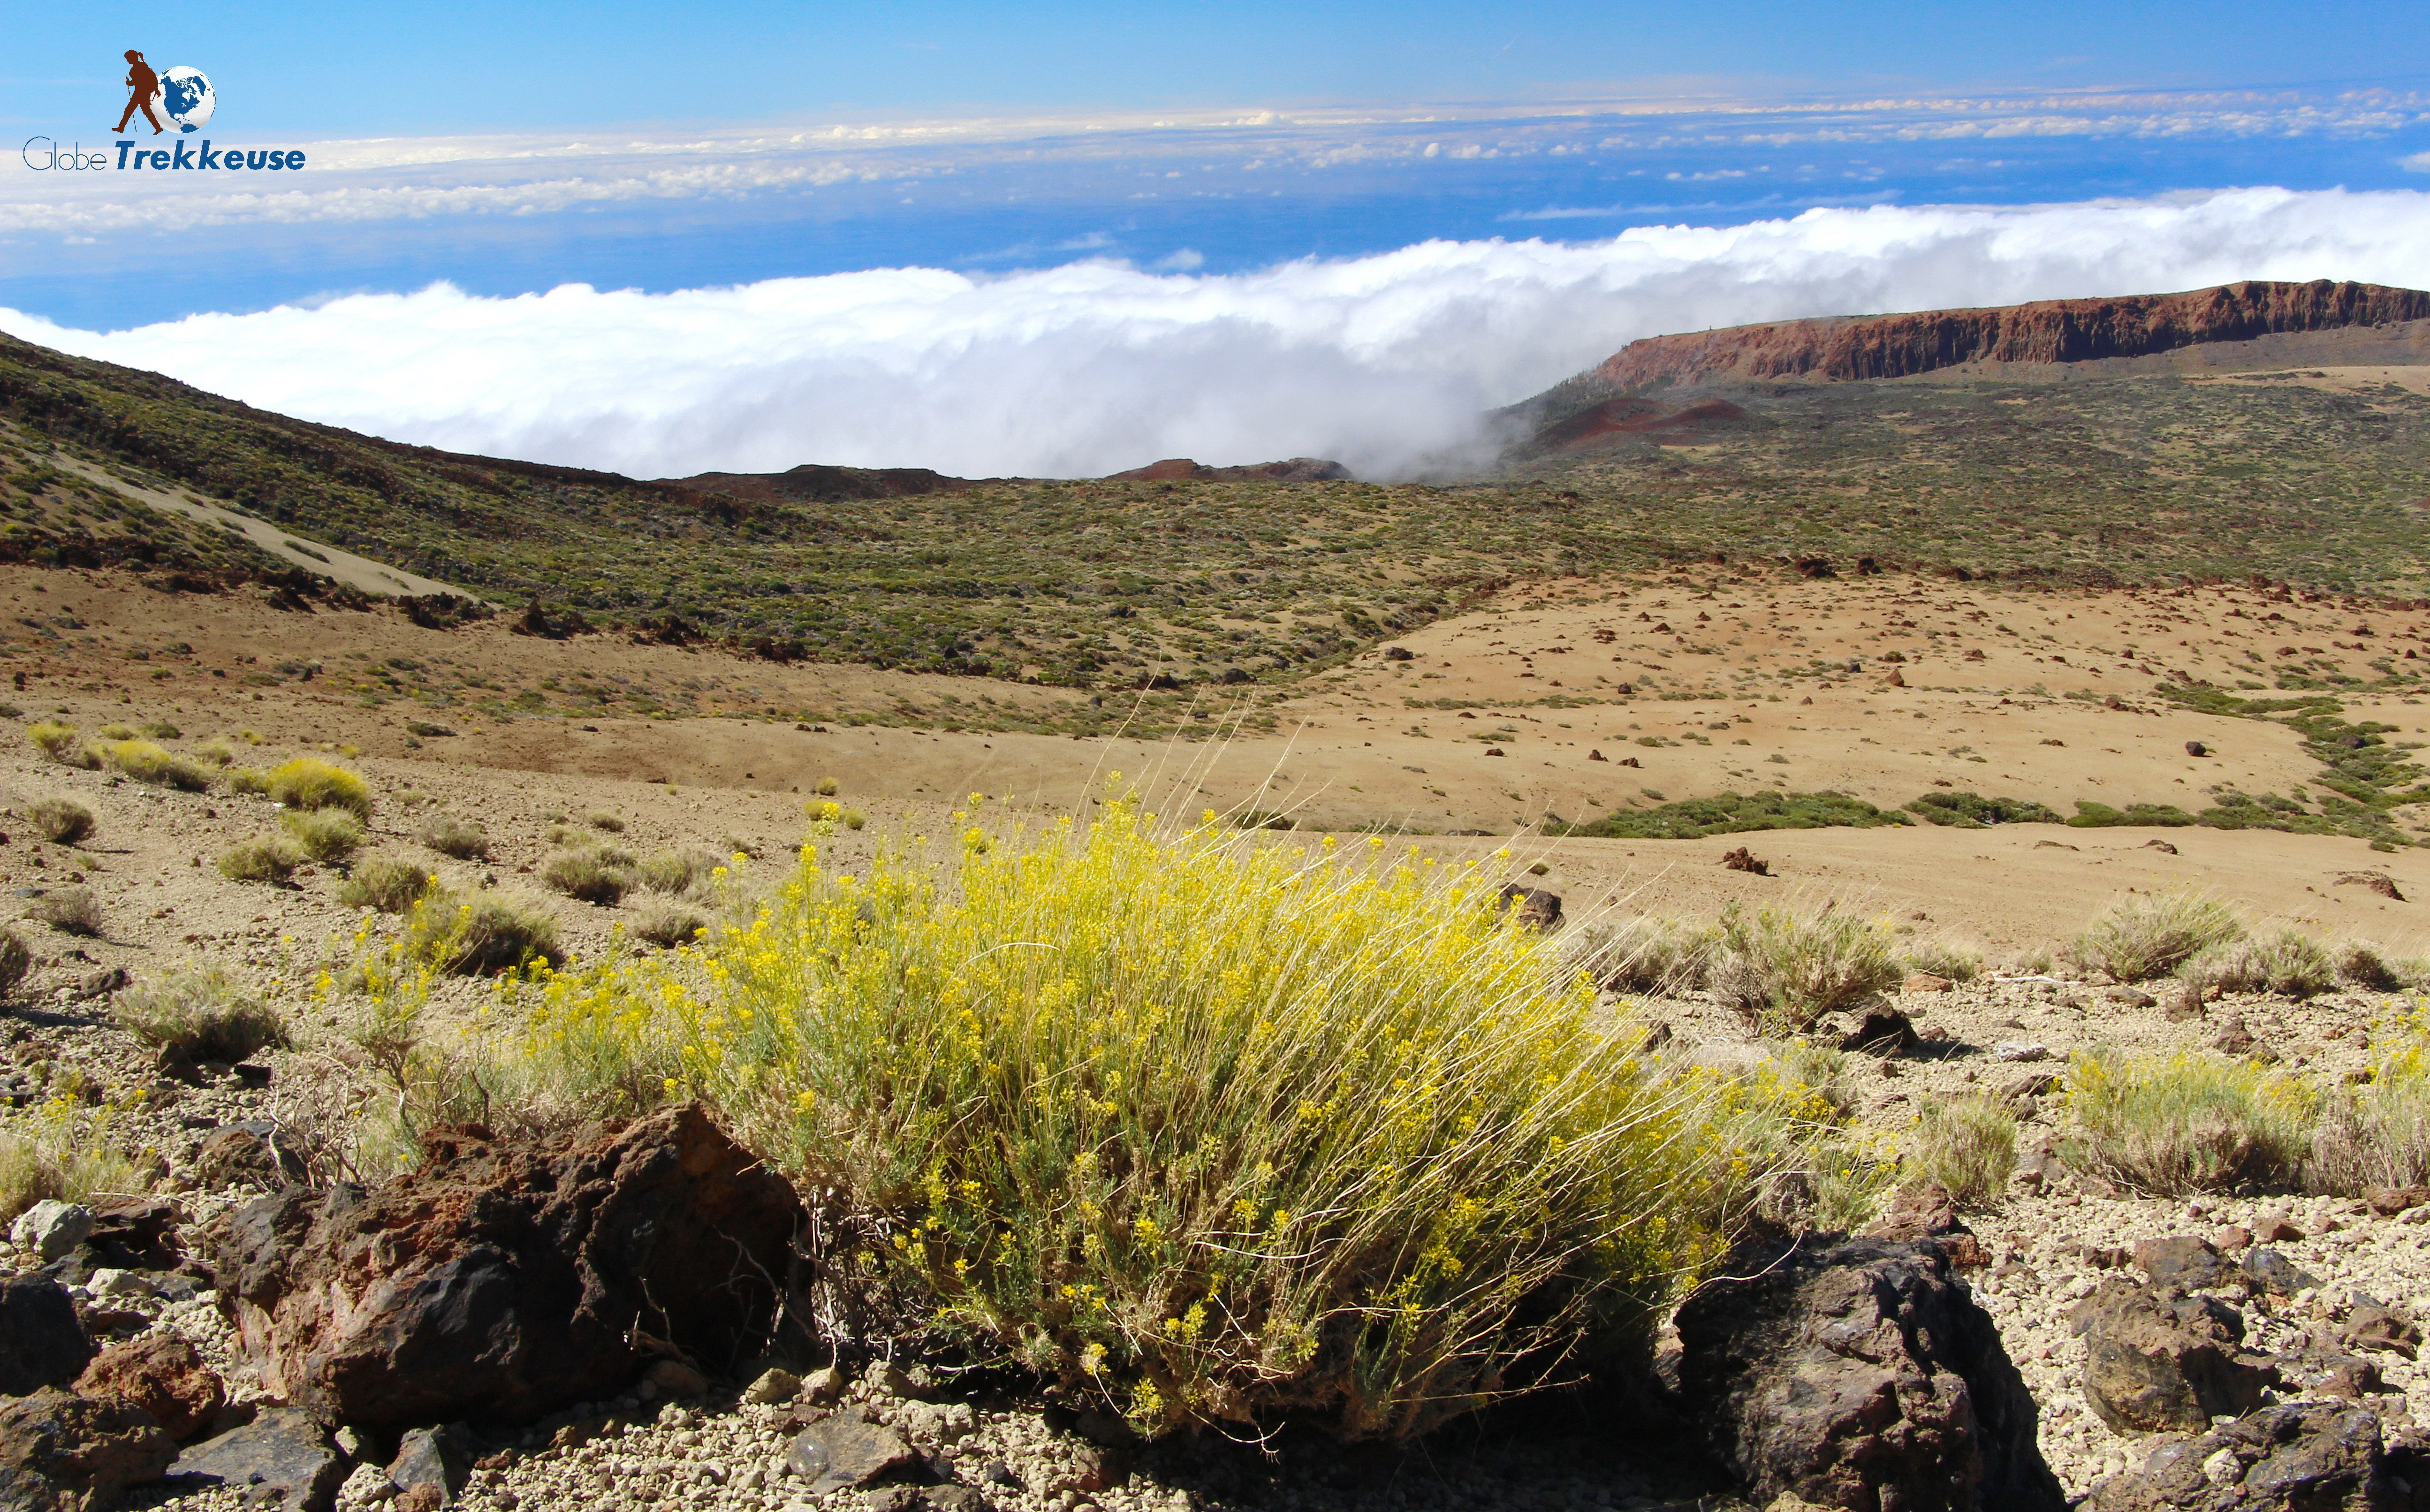 ascension du teide tenerife nuage